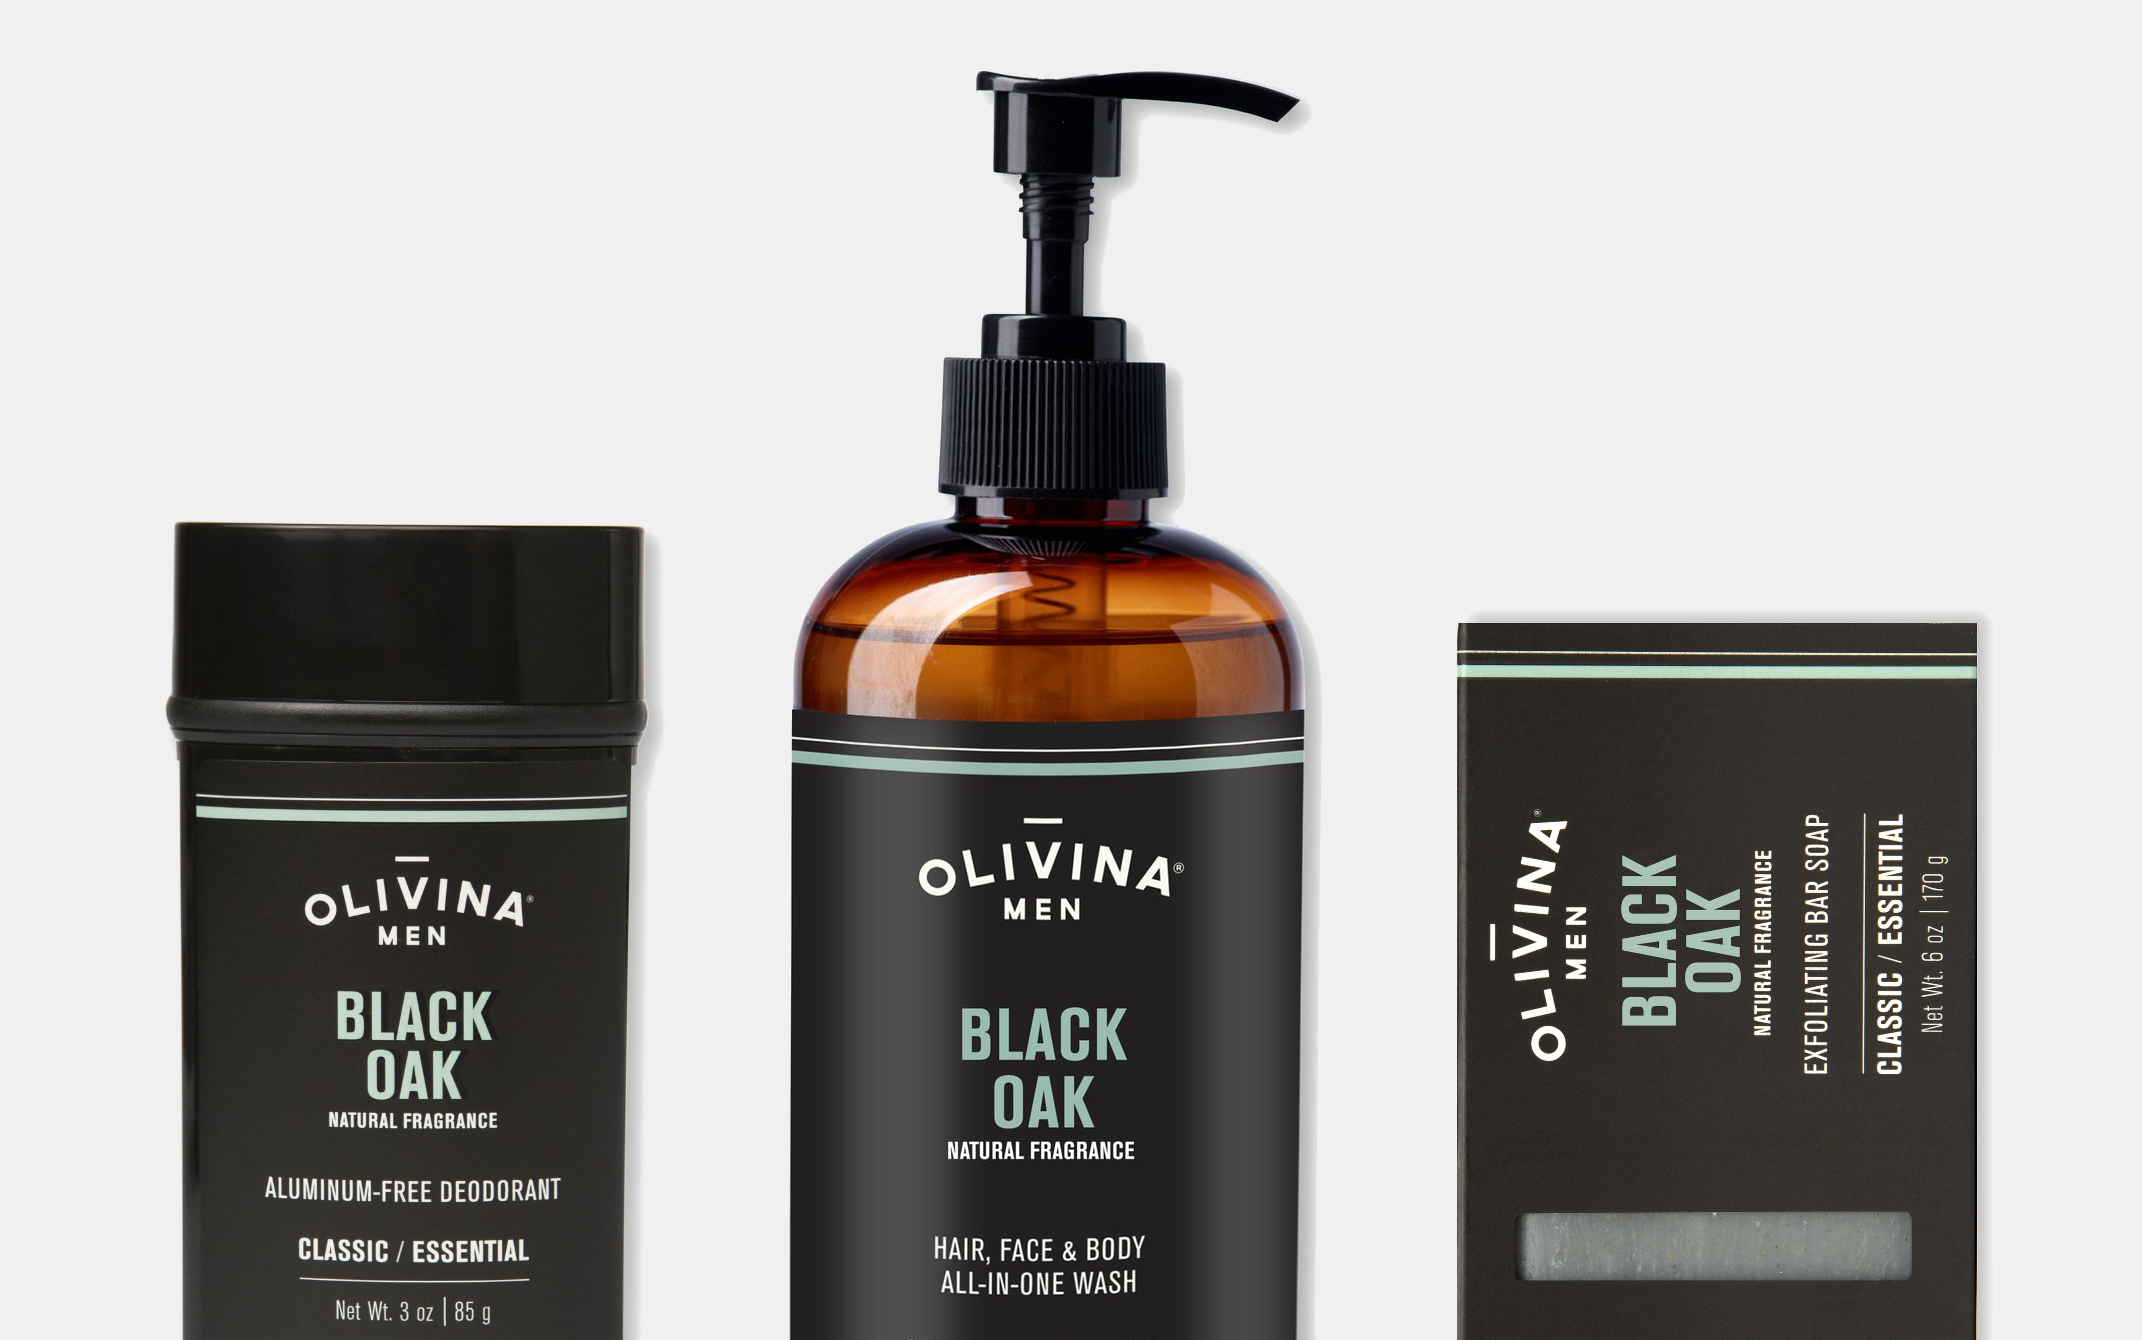 Olivina Men Black Oak Collection